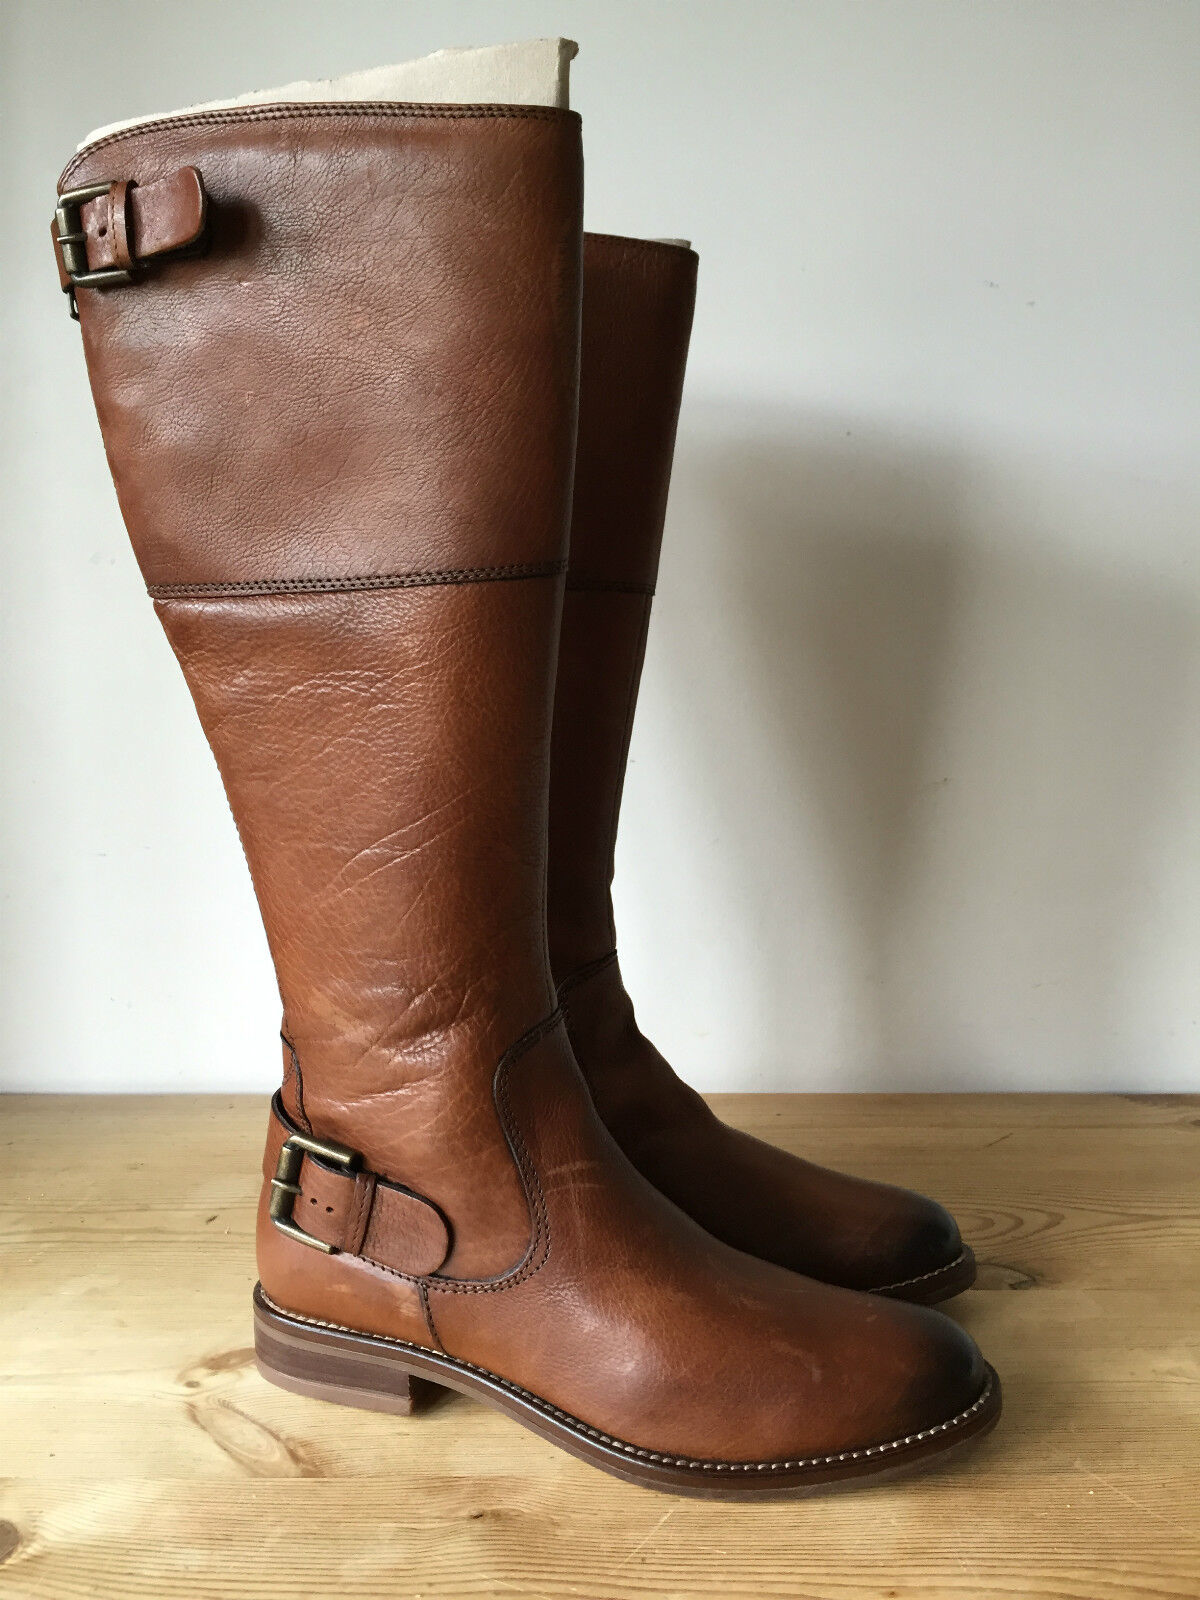 NEW CARA LADIES BROWN LEATHER KNEE HIGH RIDDING STYLE BOOTS UK 3 EUR 36